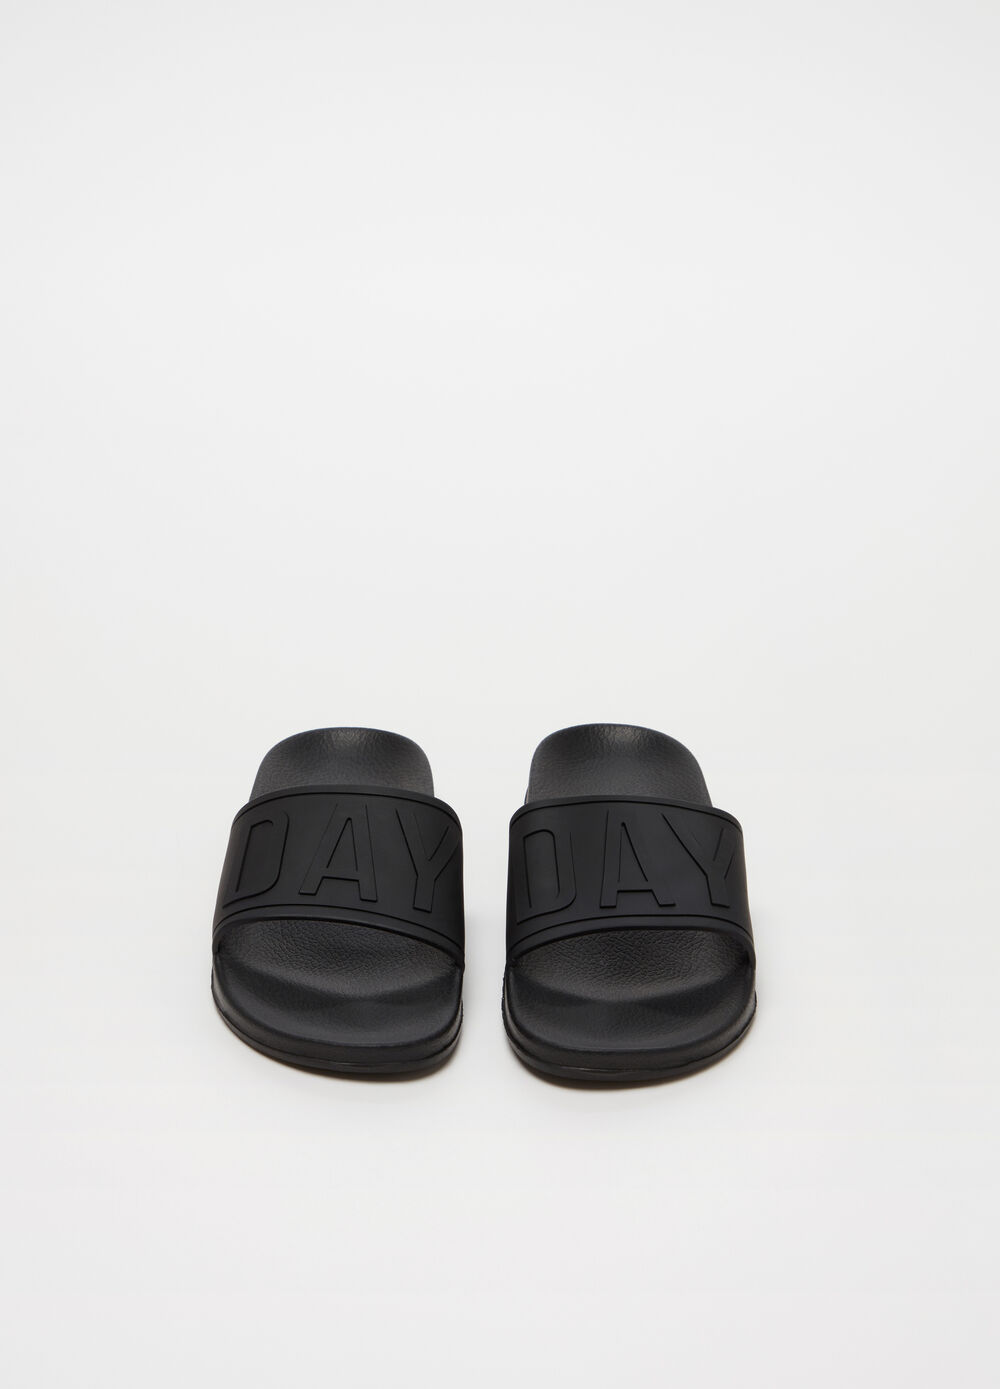 Slippers with strap with raised lettering